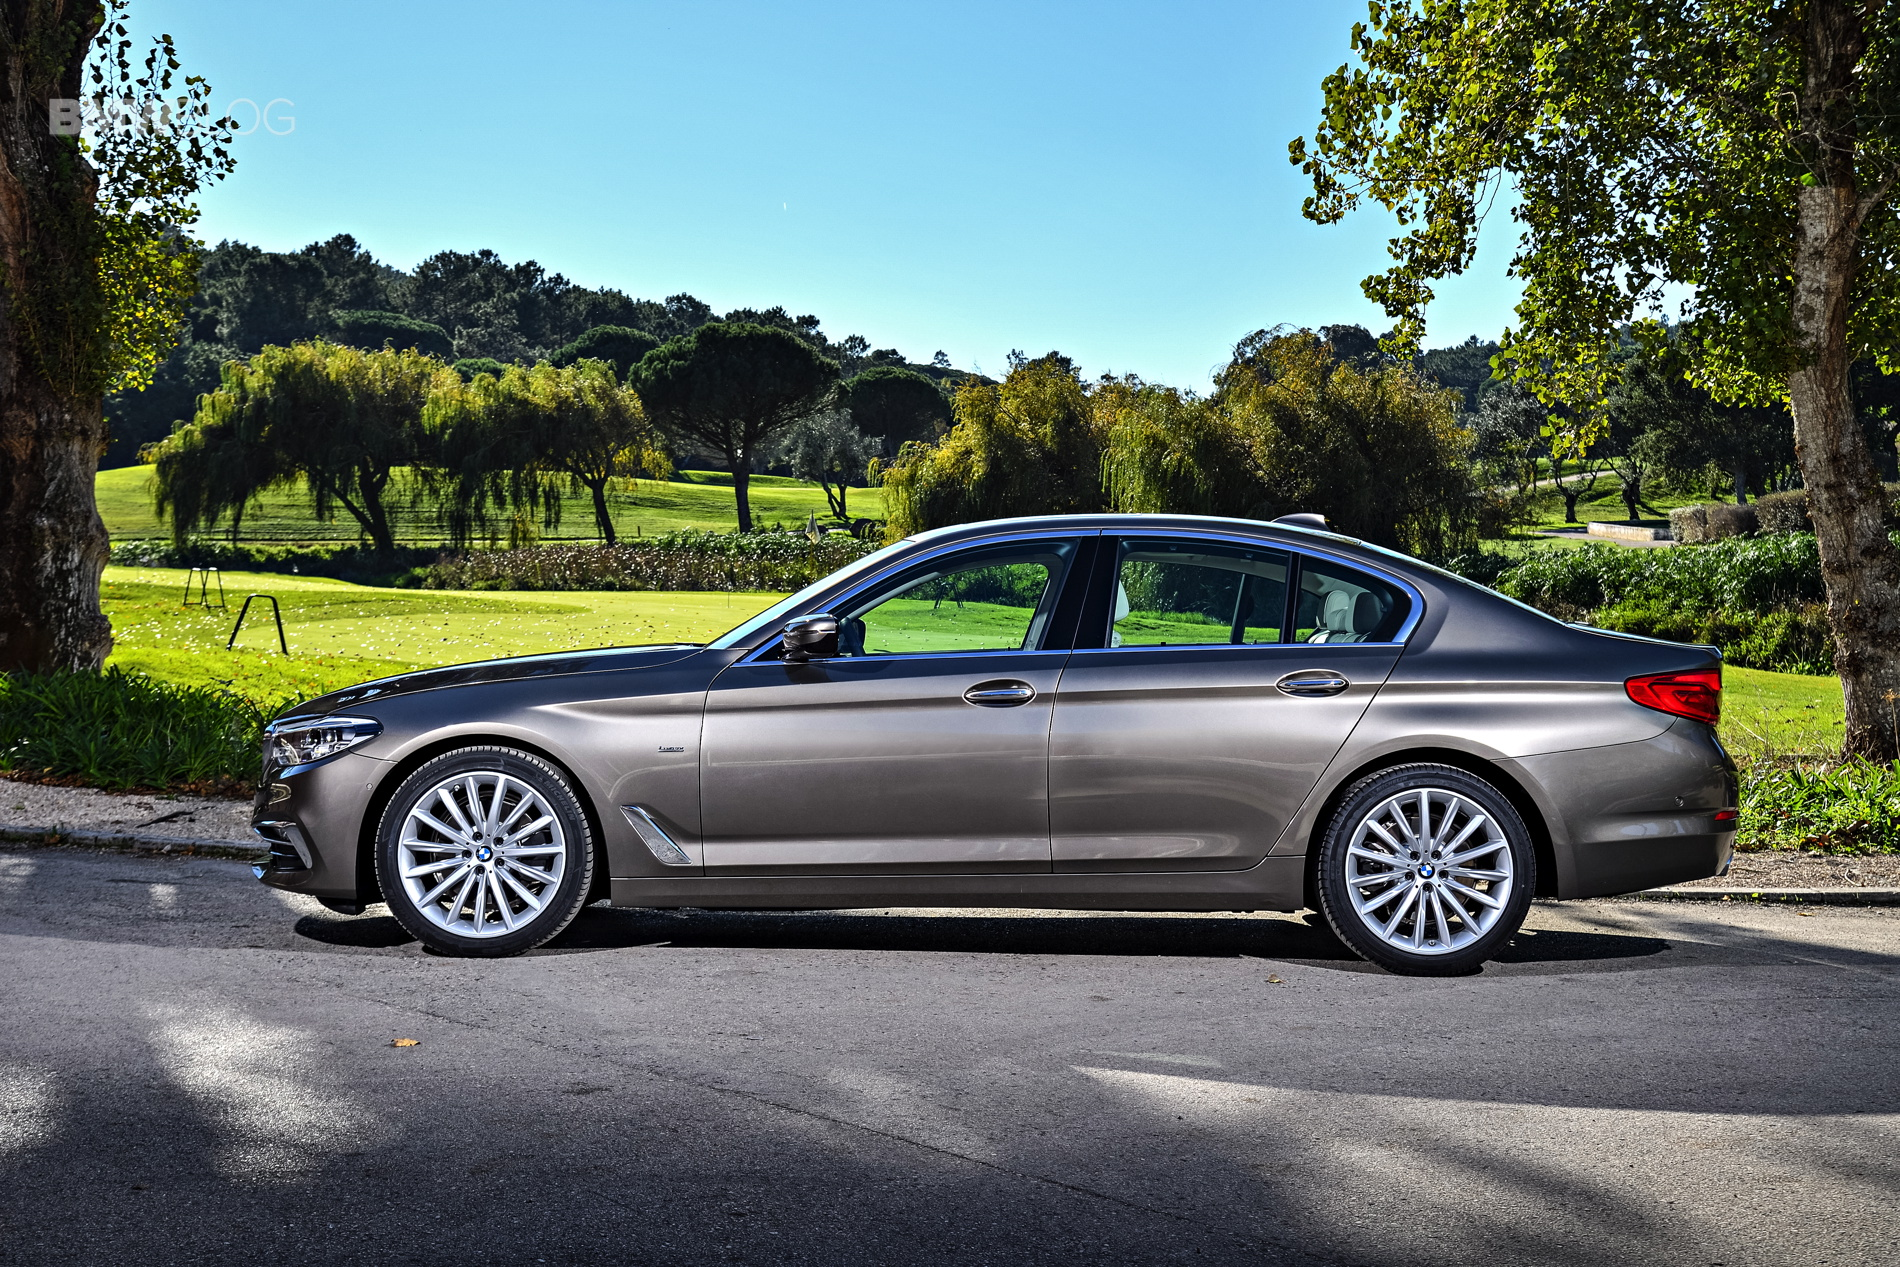 Bmw 5 Series 2016 >> The new 520d will likely be the 5 Series' most popular model